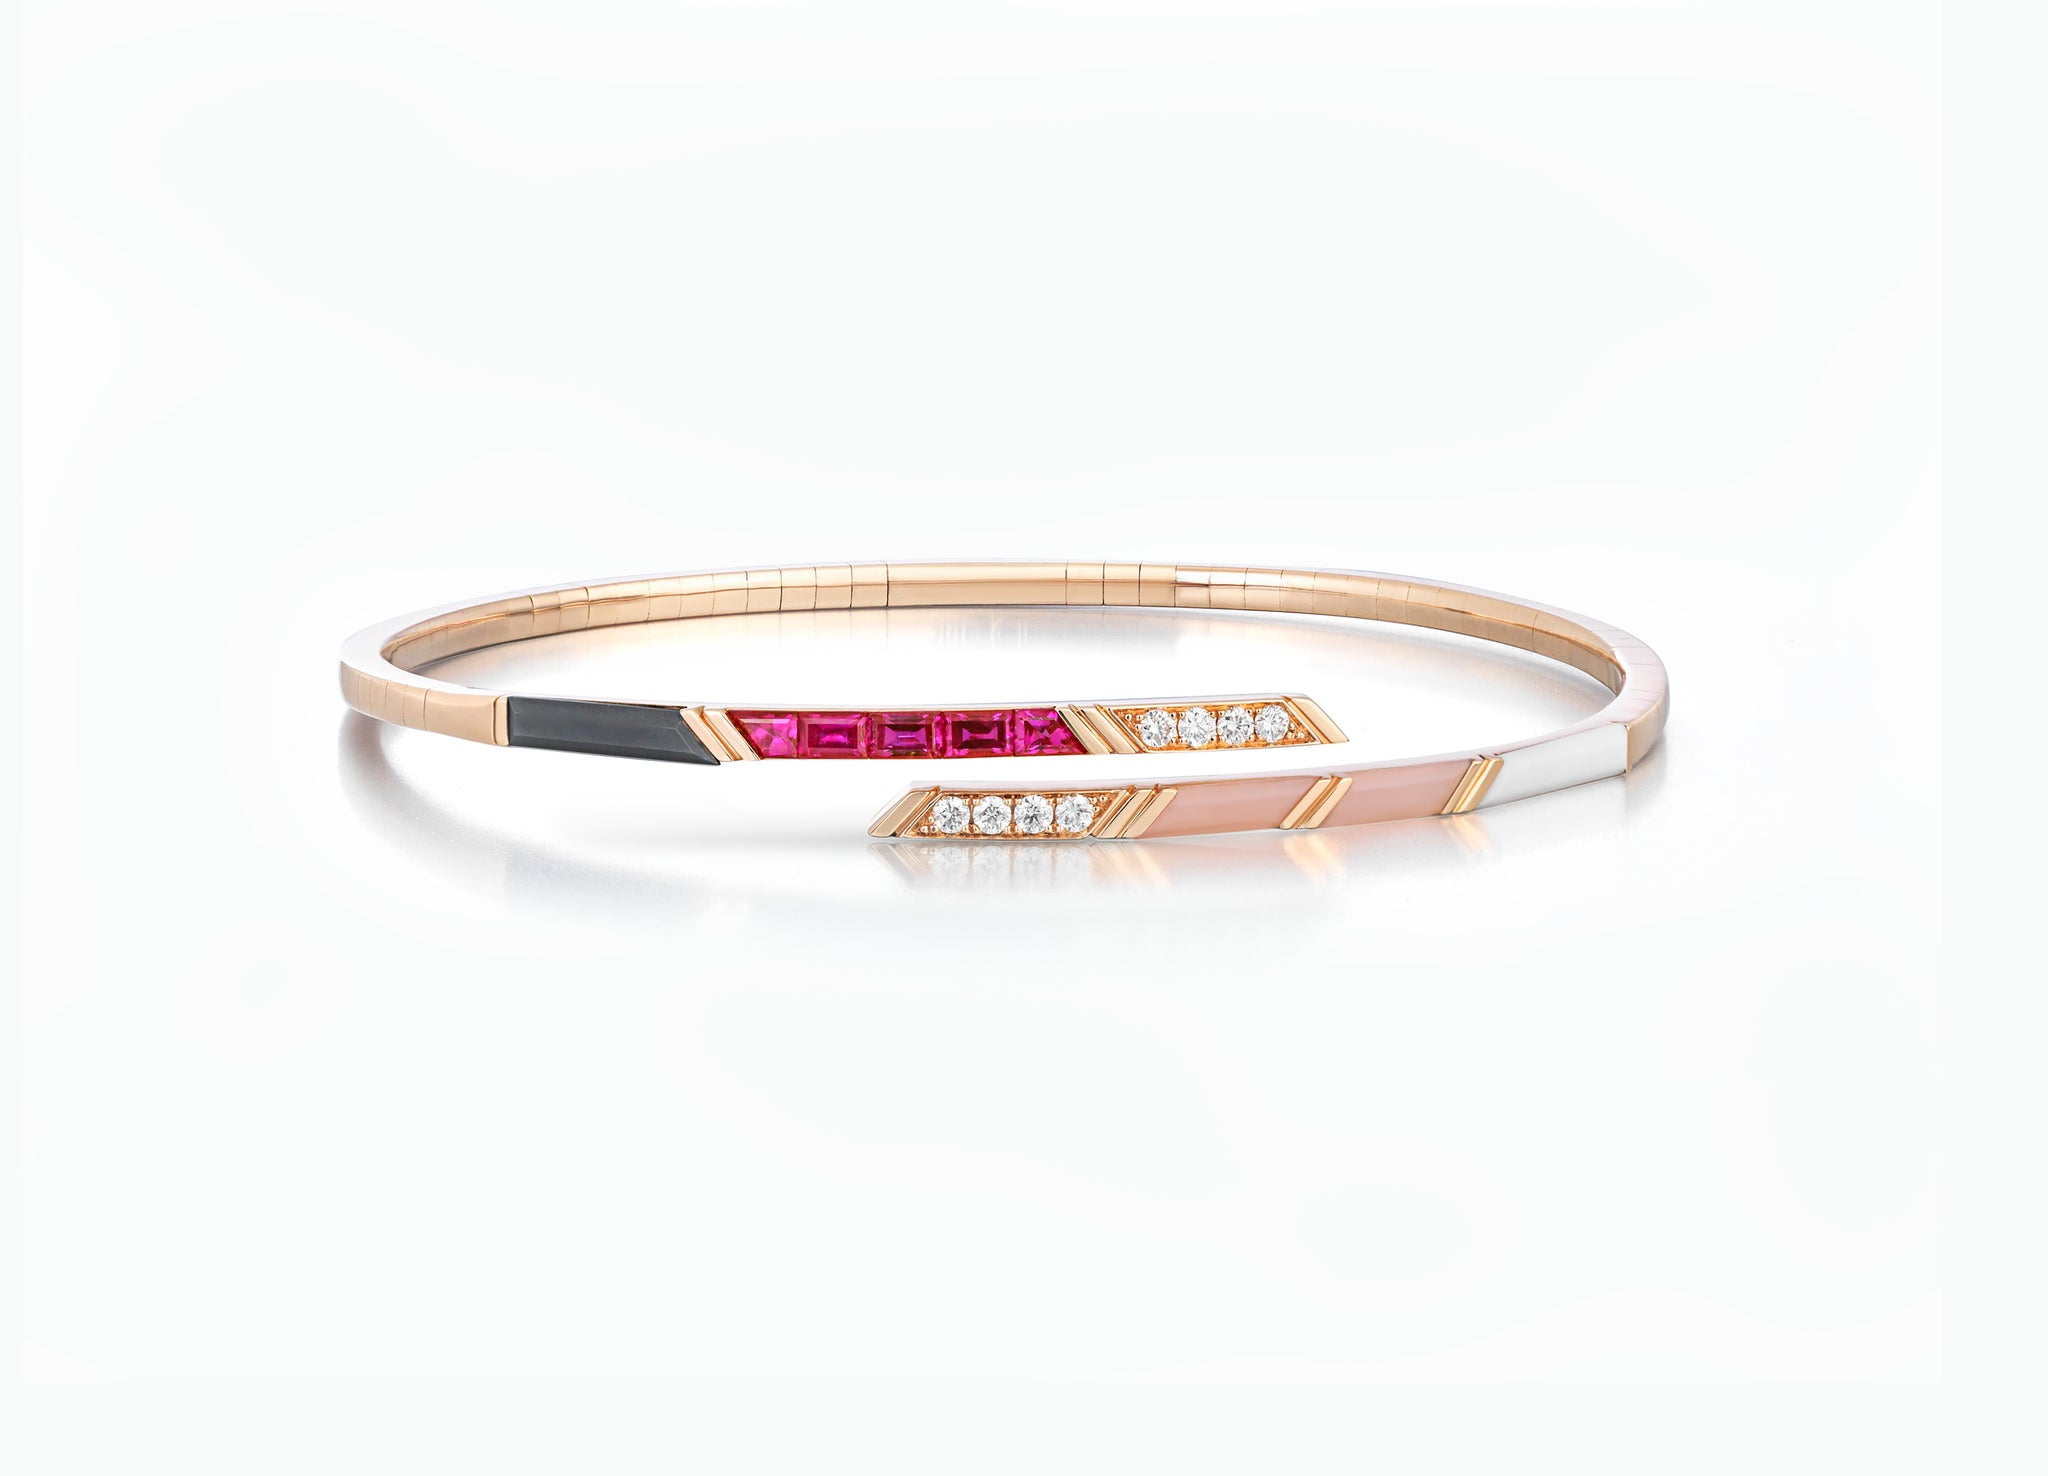 Ruby diamond and pink opal bangle in 18K rose gold by Tomasz Donocik front view